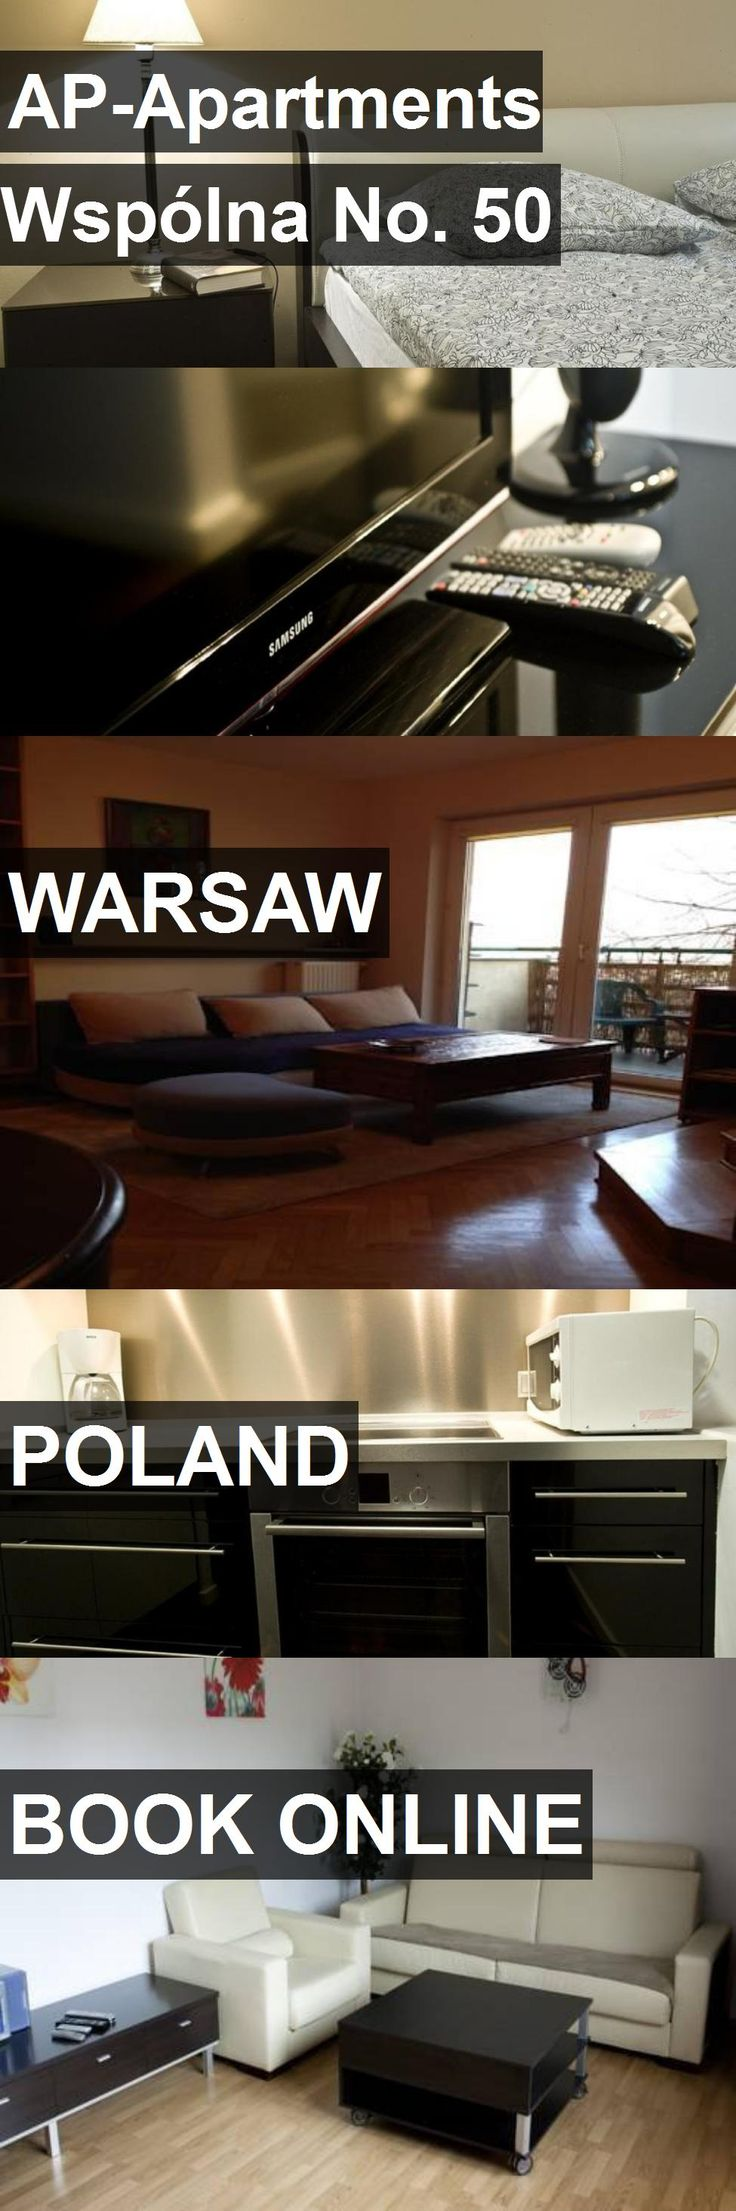 Hotel AP-Apartments Wspólna No. 50 in Warsaw, Poland. For more information, photos, reviews and best prices please follow the link. #Poland #Warsaw #AP-ApartmentsWspólnaNo.50 #hotel #travel #vacation